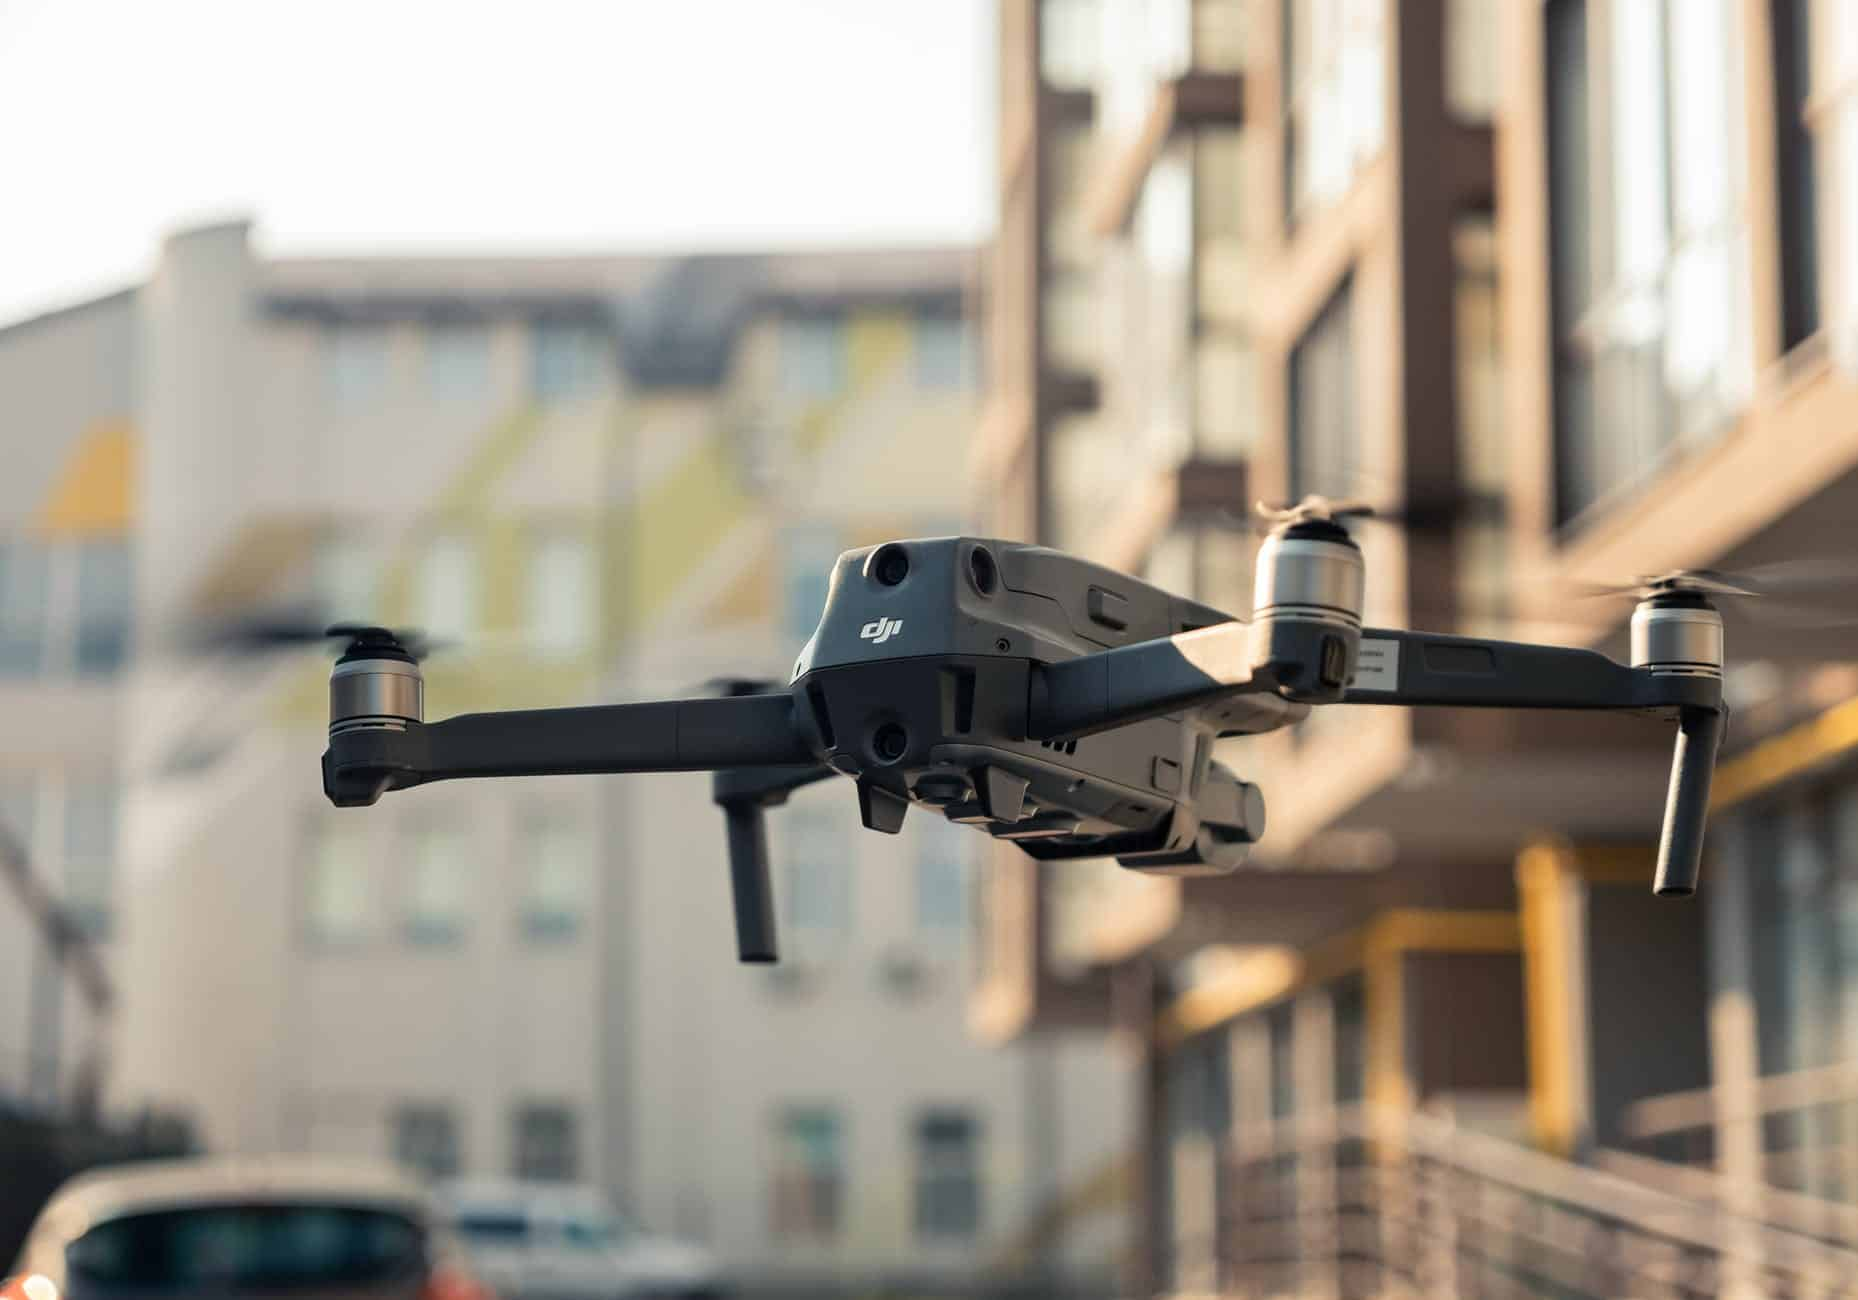 Why Is The Crazy Drone So Popular?